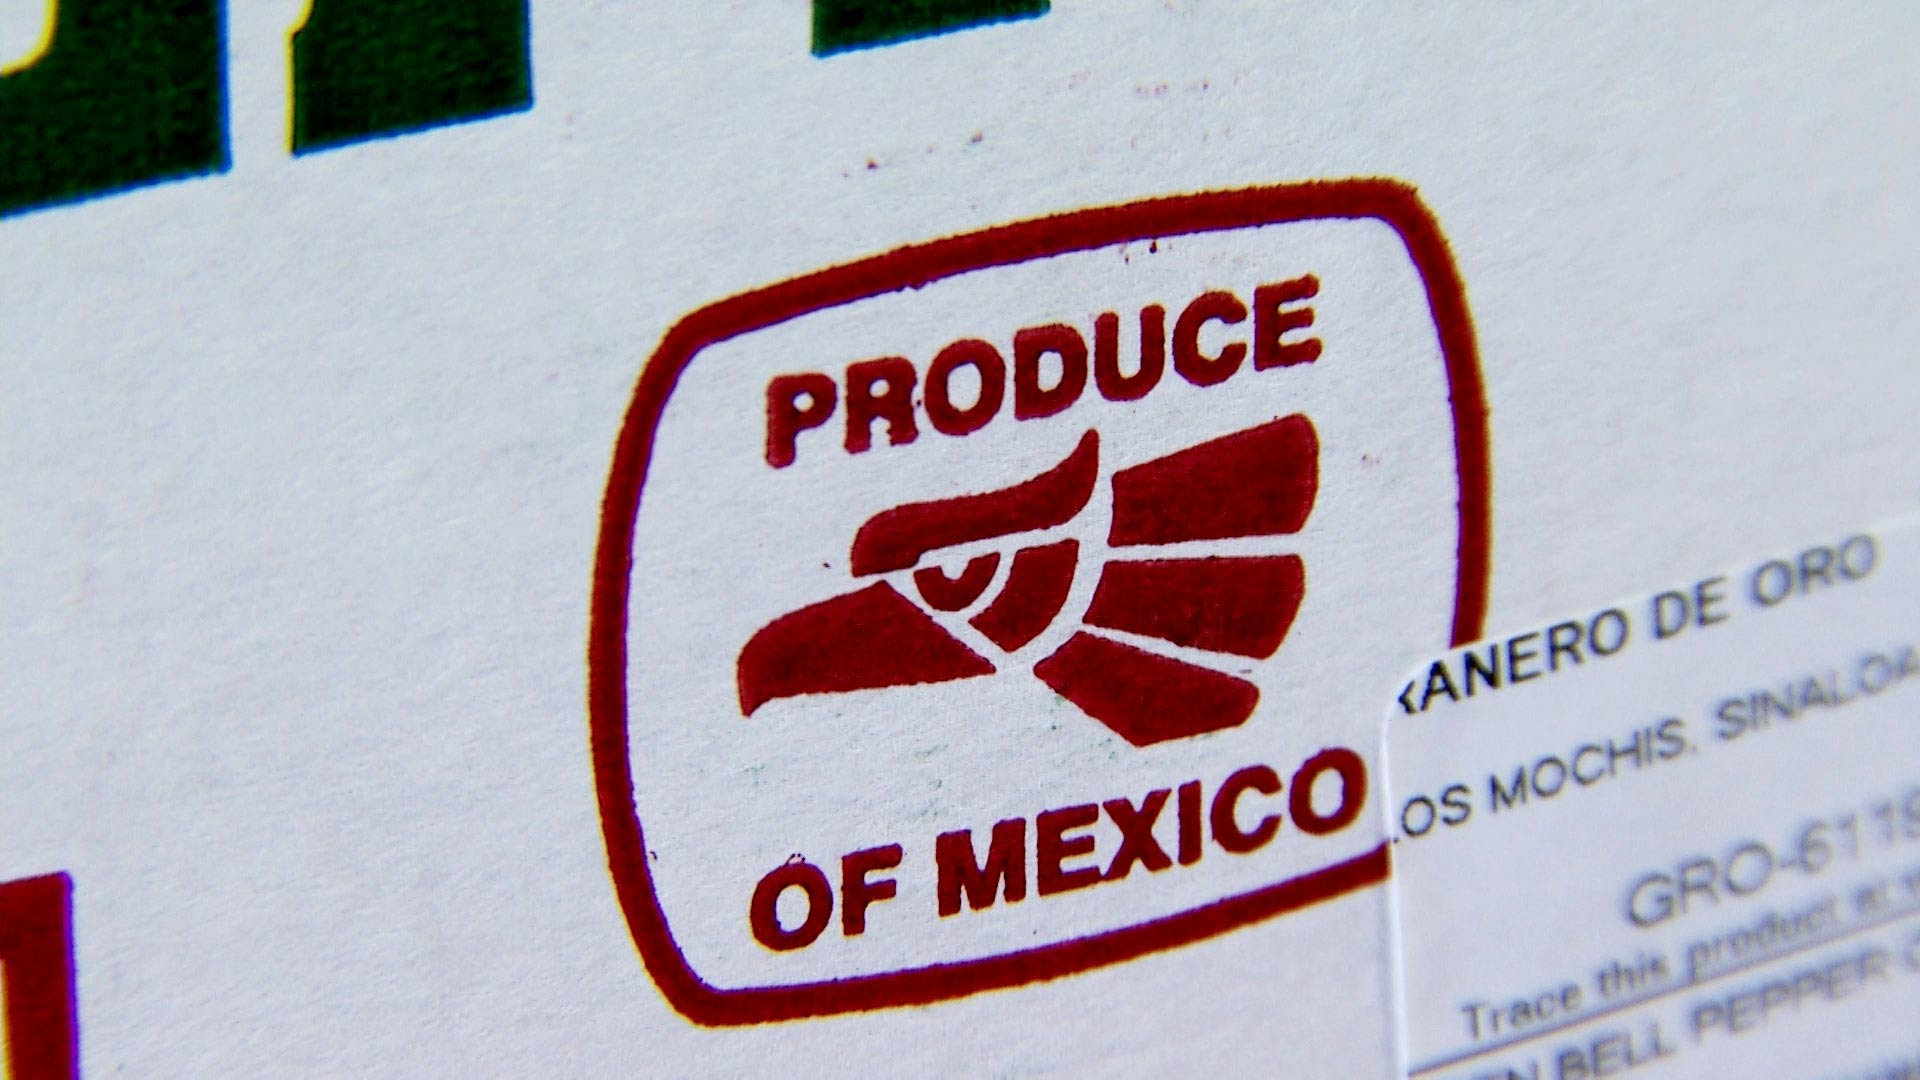 Produce of Mexico box at a distribution center.